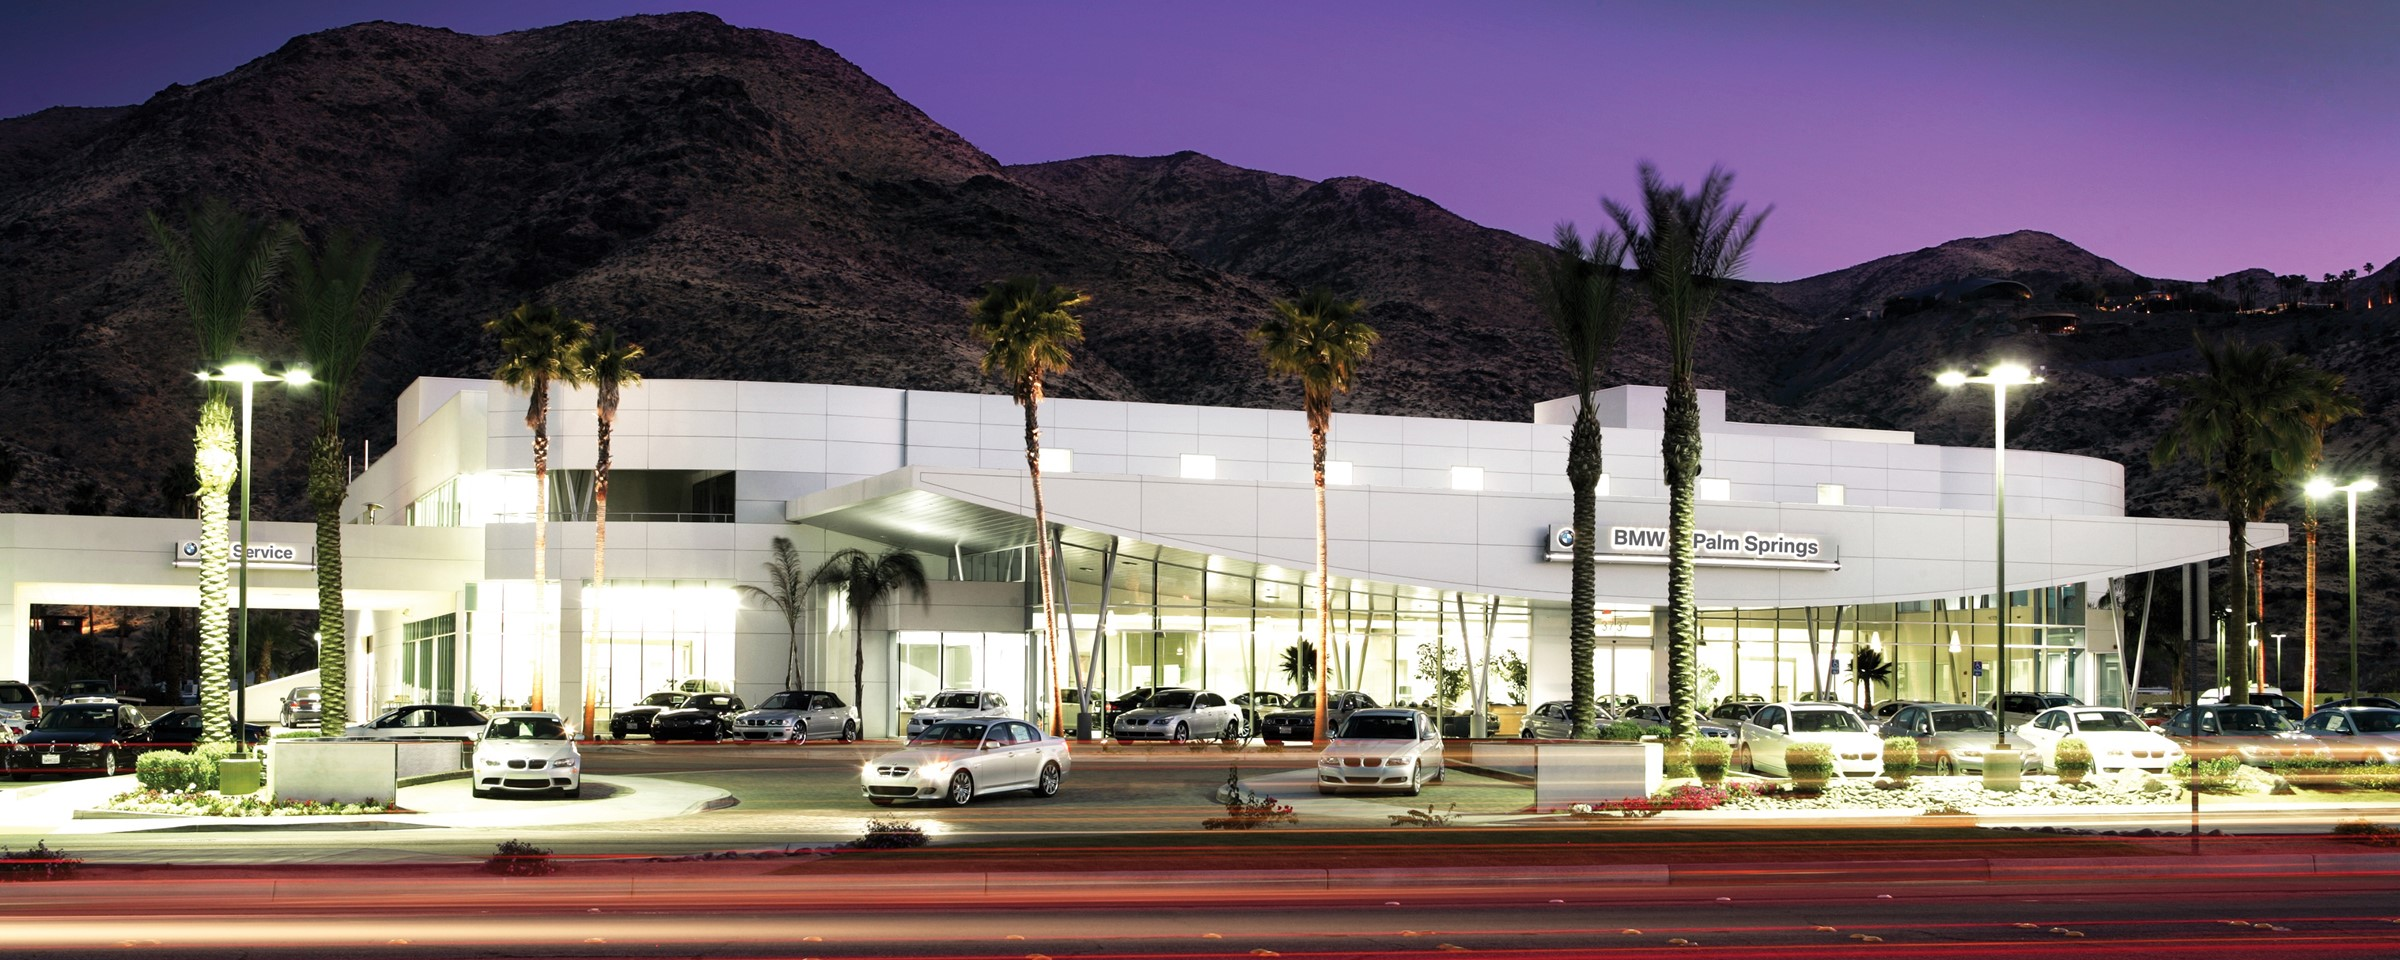 indiGO Auto Group Acquires BMW of Palm Springs - BMW of ...